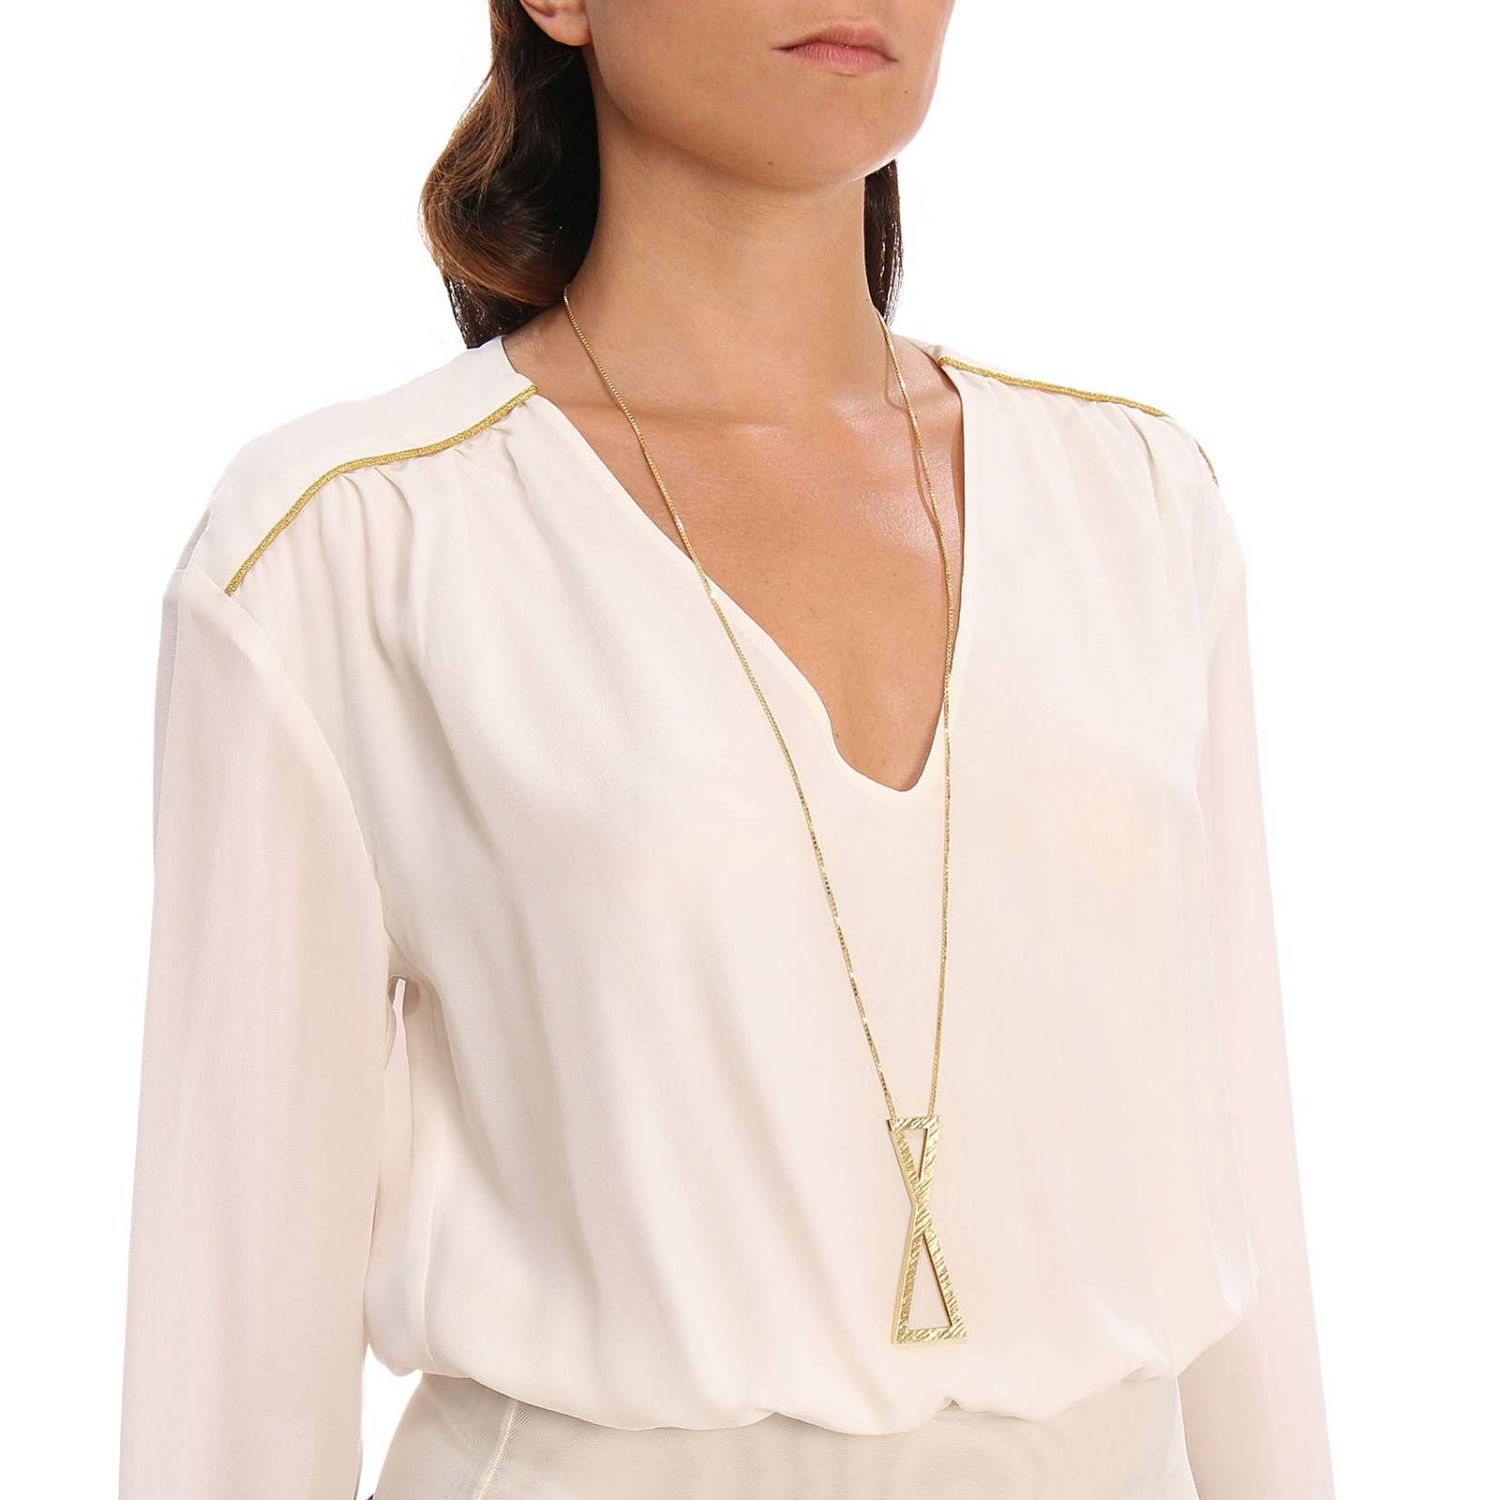 Collana Big clepsydra pendant in argento 925 Linear Collection oro 2